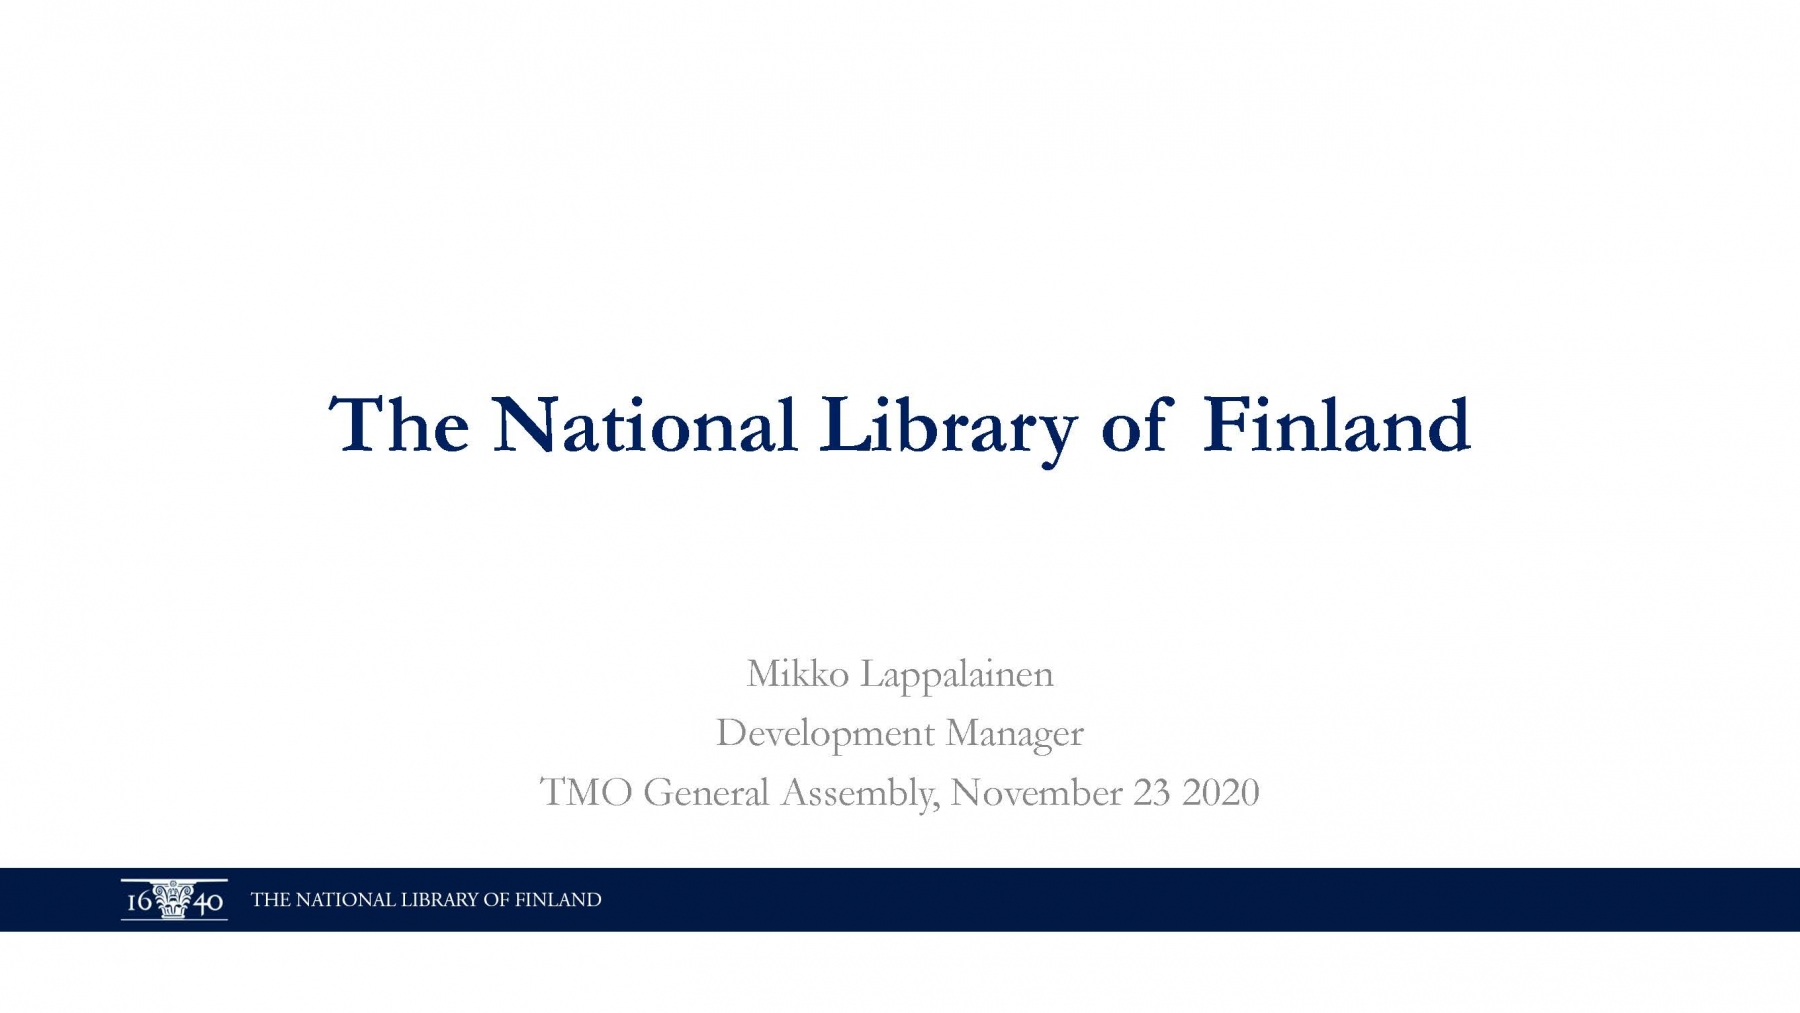 National Library of Finland (pres. by Mikko Lappalainen)